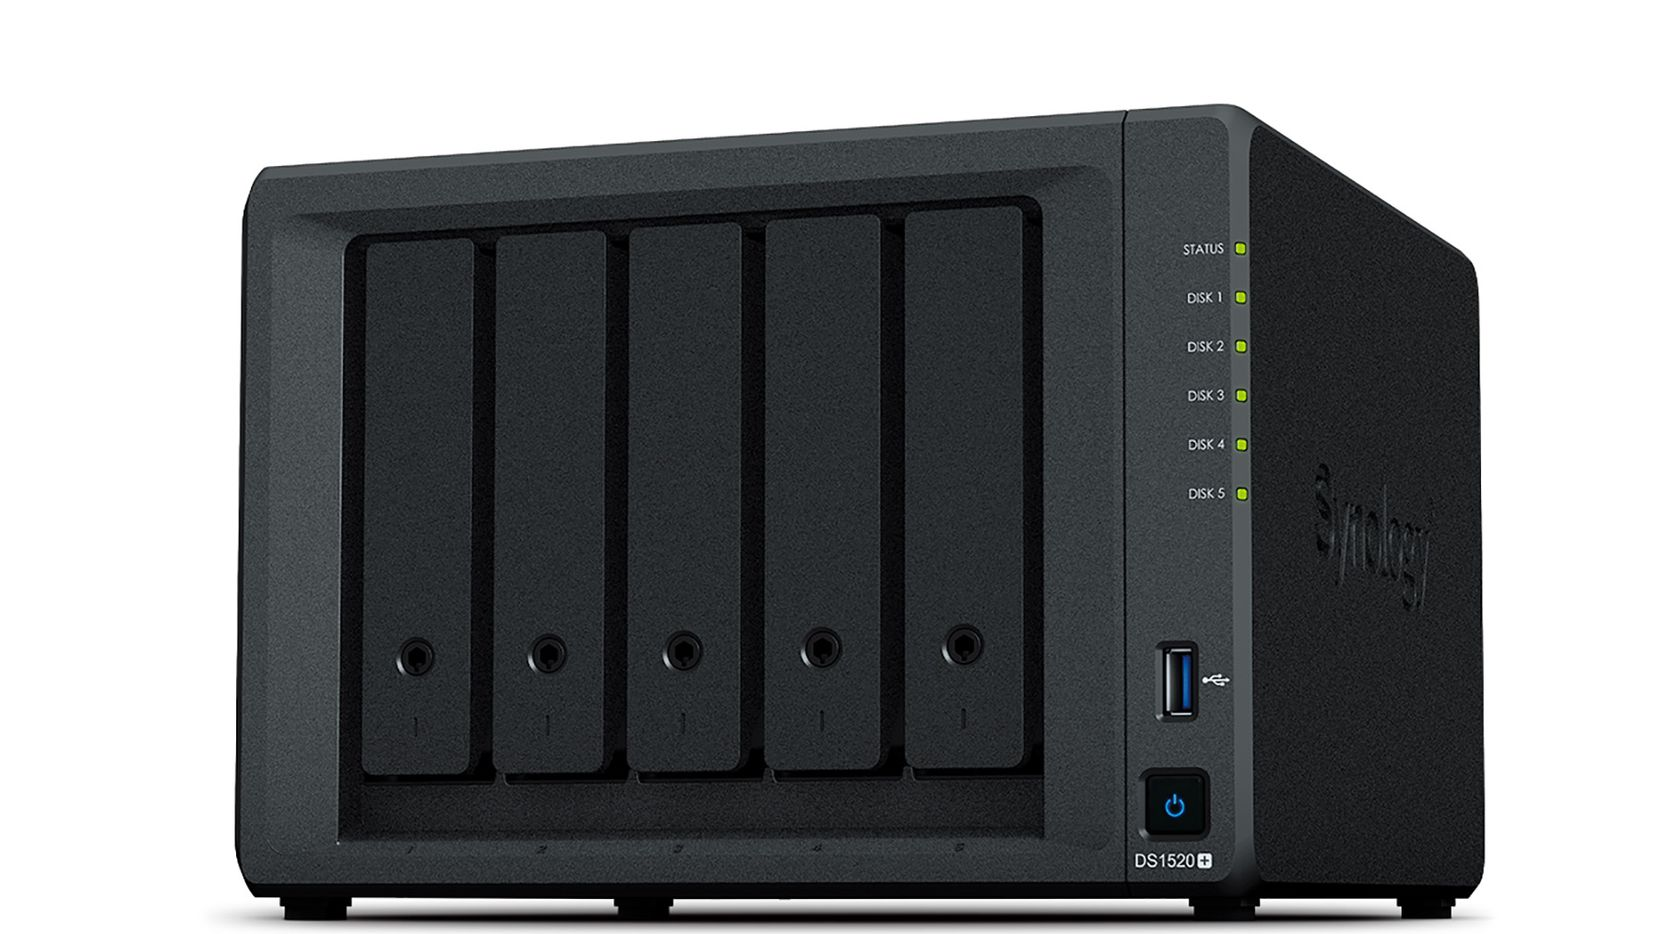 The Synology DS1520+ is a 5-bay network attached storage device.